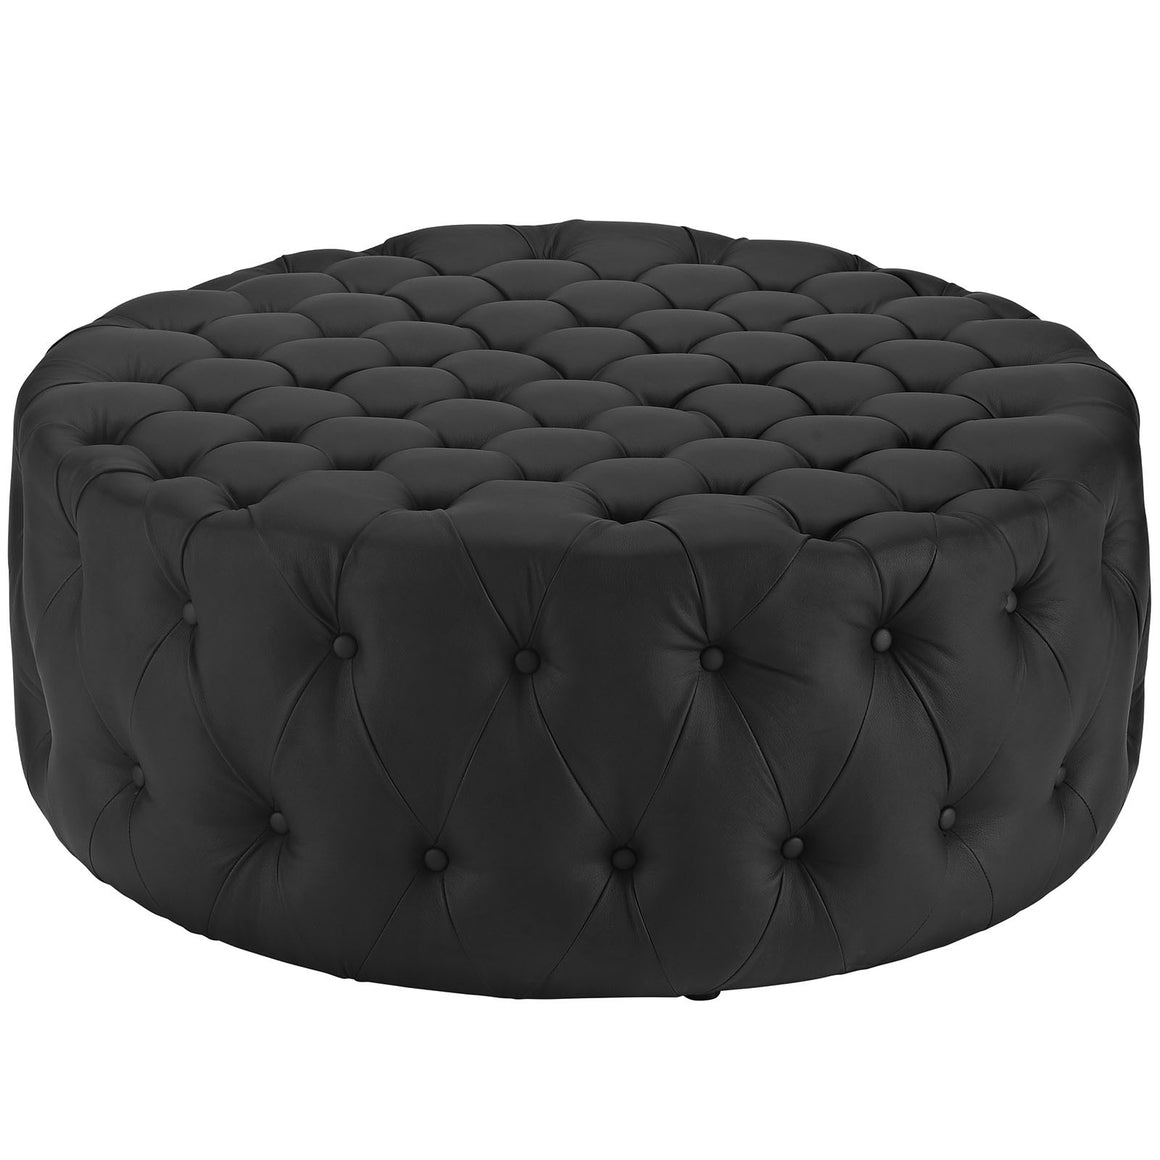 Amour Tufted Vinyl Ottoman in Black